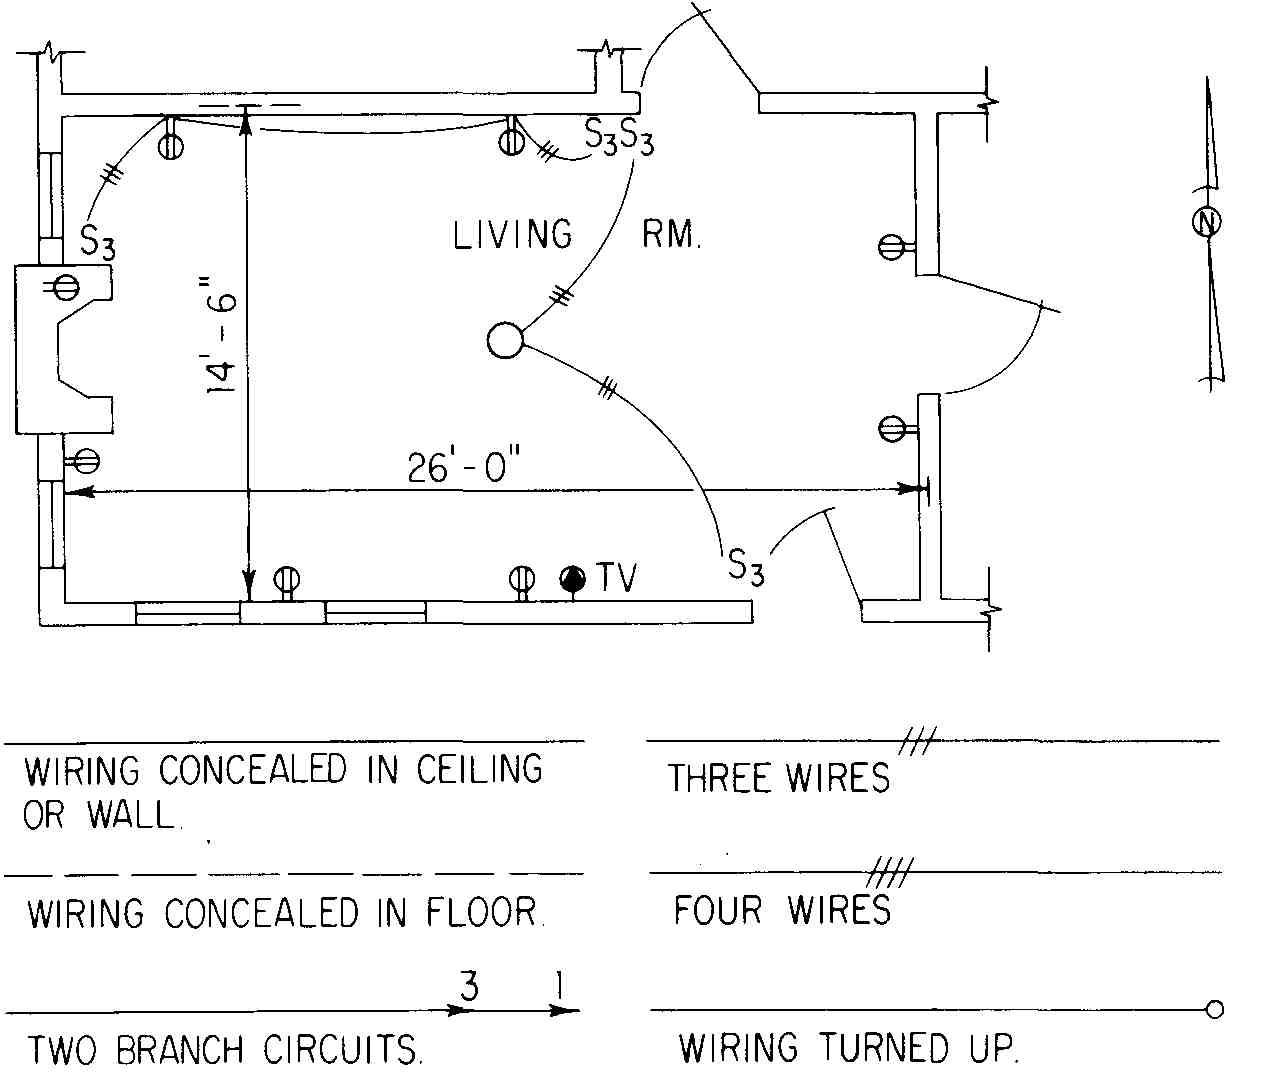 Electrical Drawing For Architectural Plans Entrance From 3 Wires Diagram